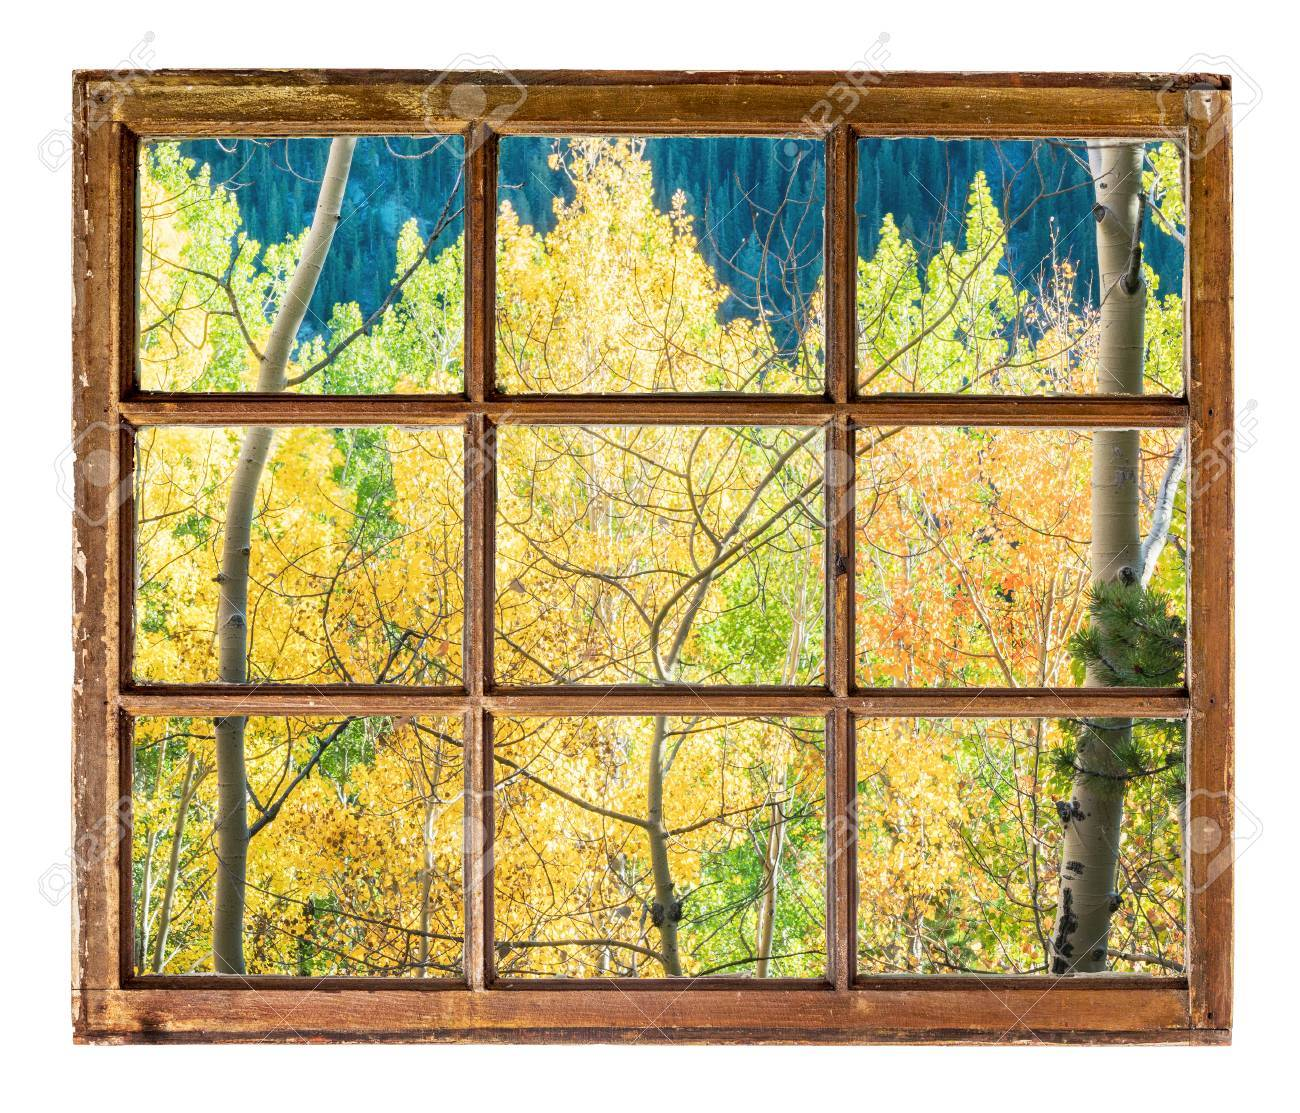 Colorado Aspen Tree In Fall Colors As Seen From A Sash Window ...